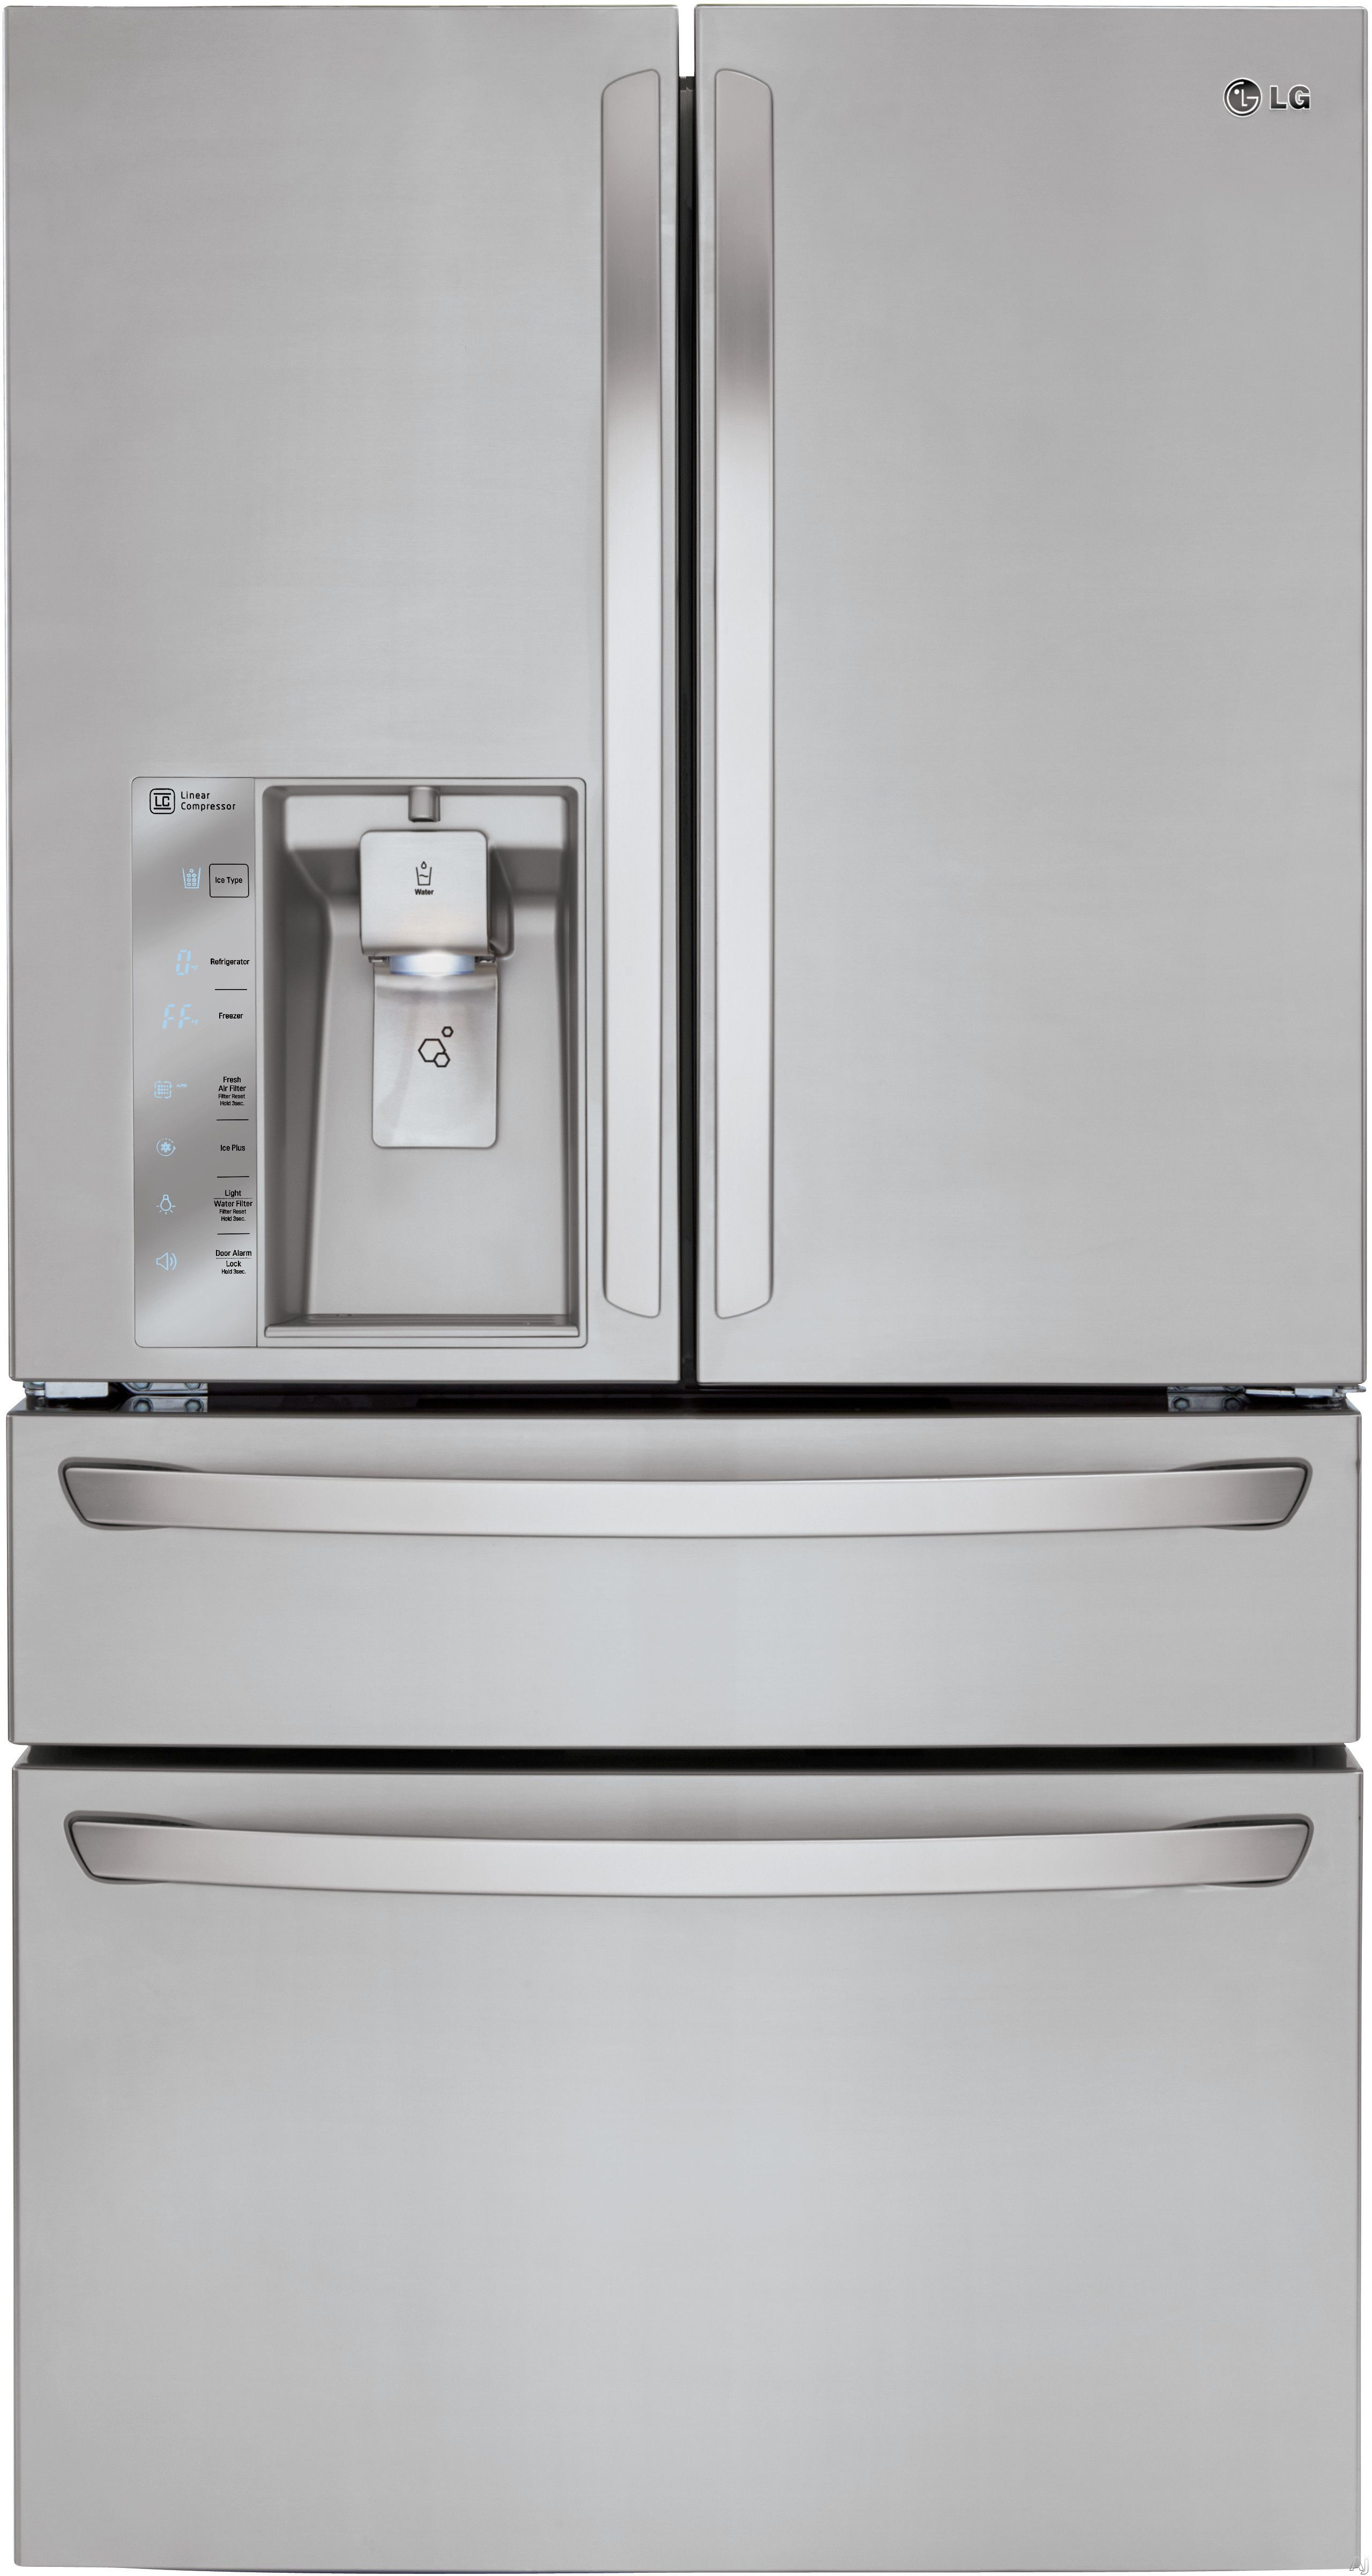 Lg Lmxc23746s 22 7 Cu Ft Counter Depth French Door Refrigerator